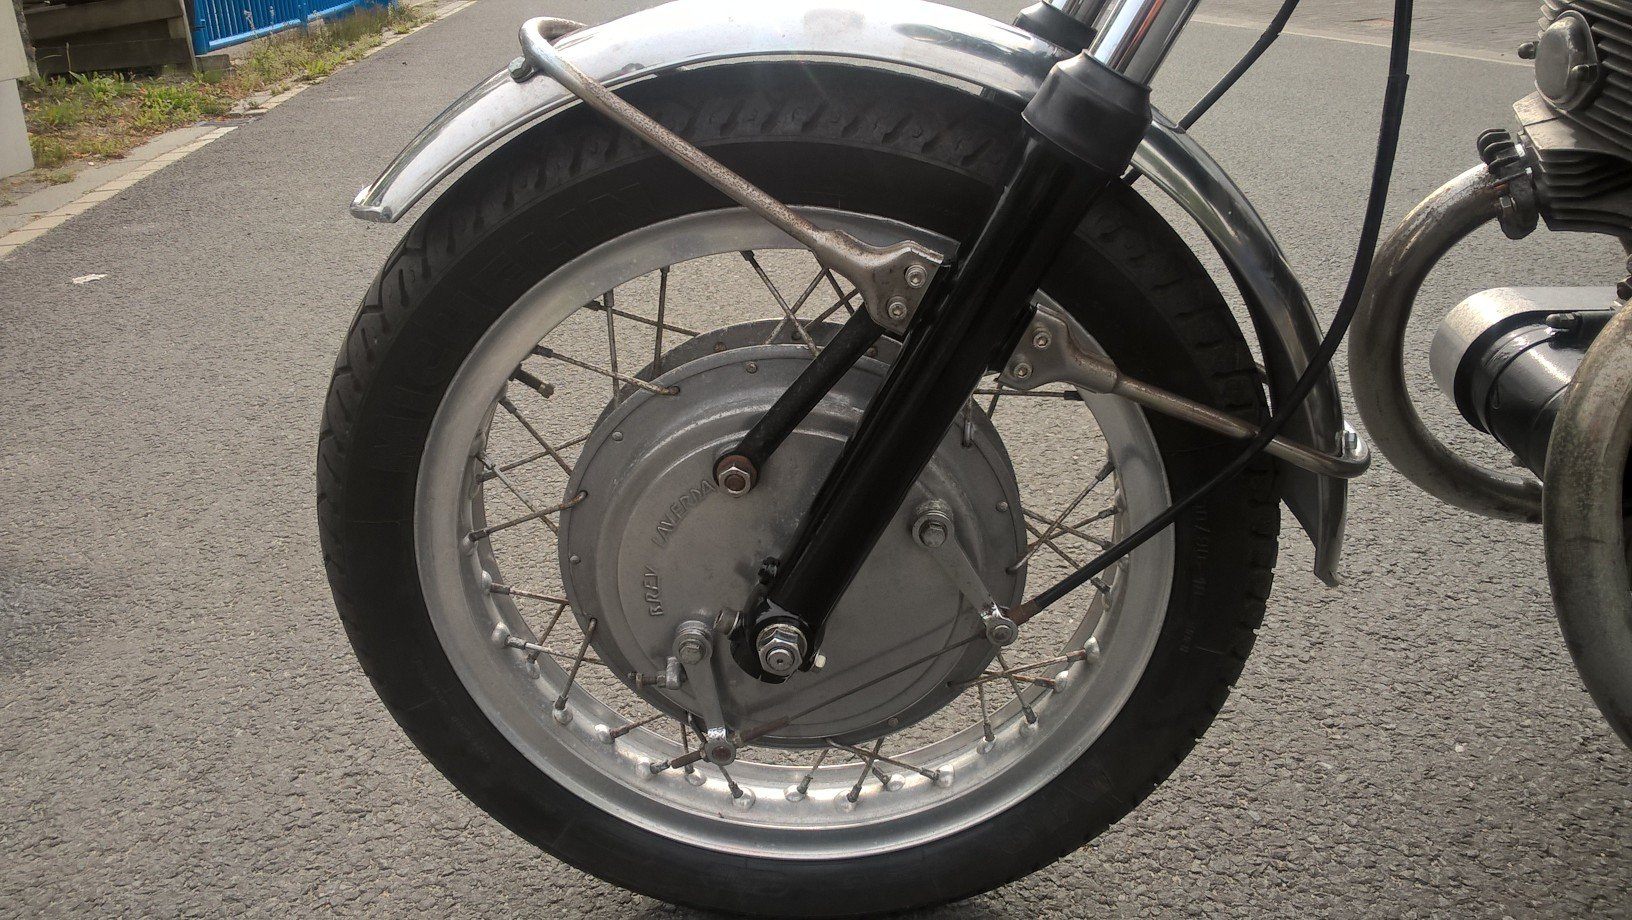 1971 Laverda 750 SF drumbrake type For Sale (picture 6 of 6)